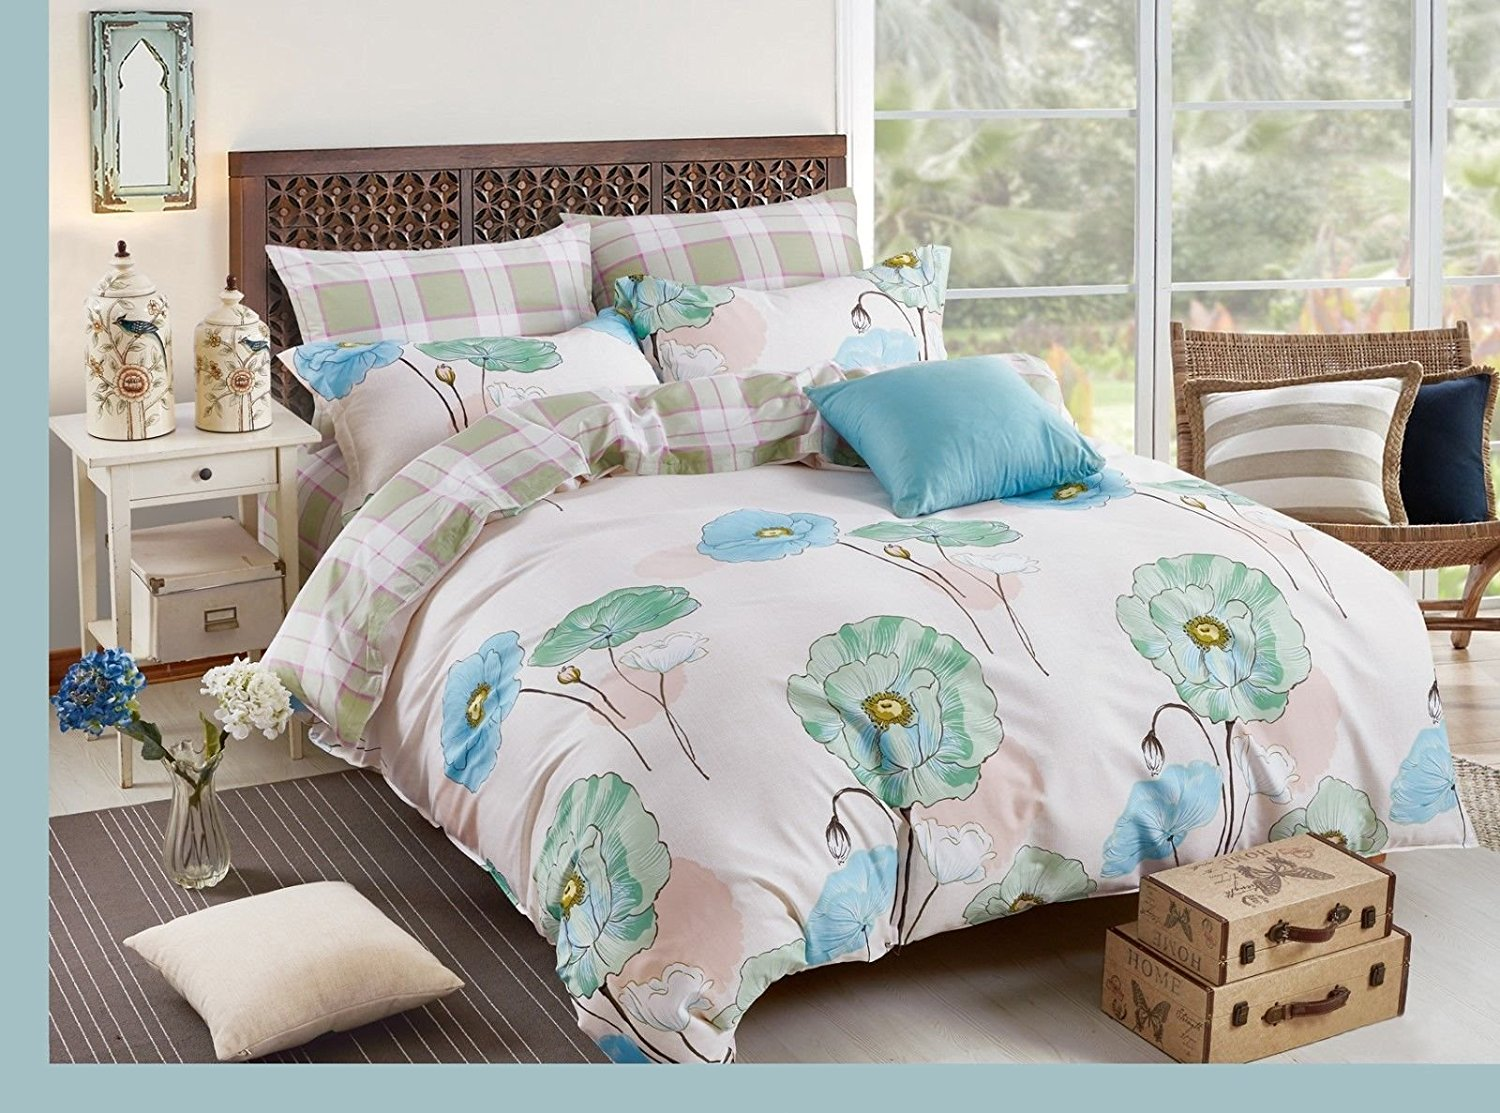 Double Bed Duvet Set (Design 2)